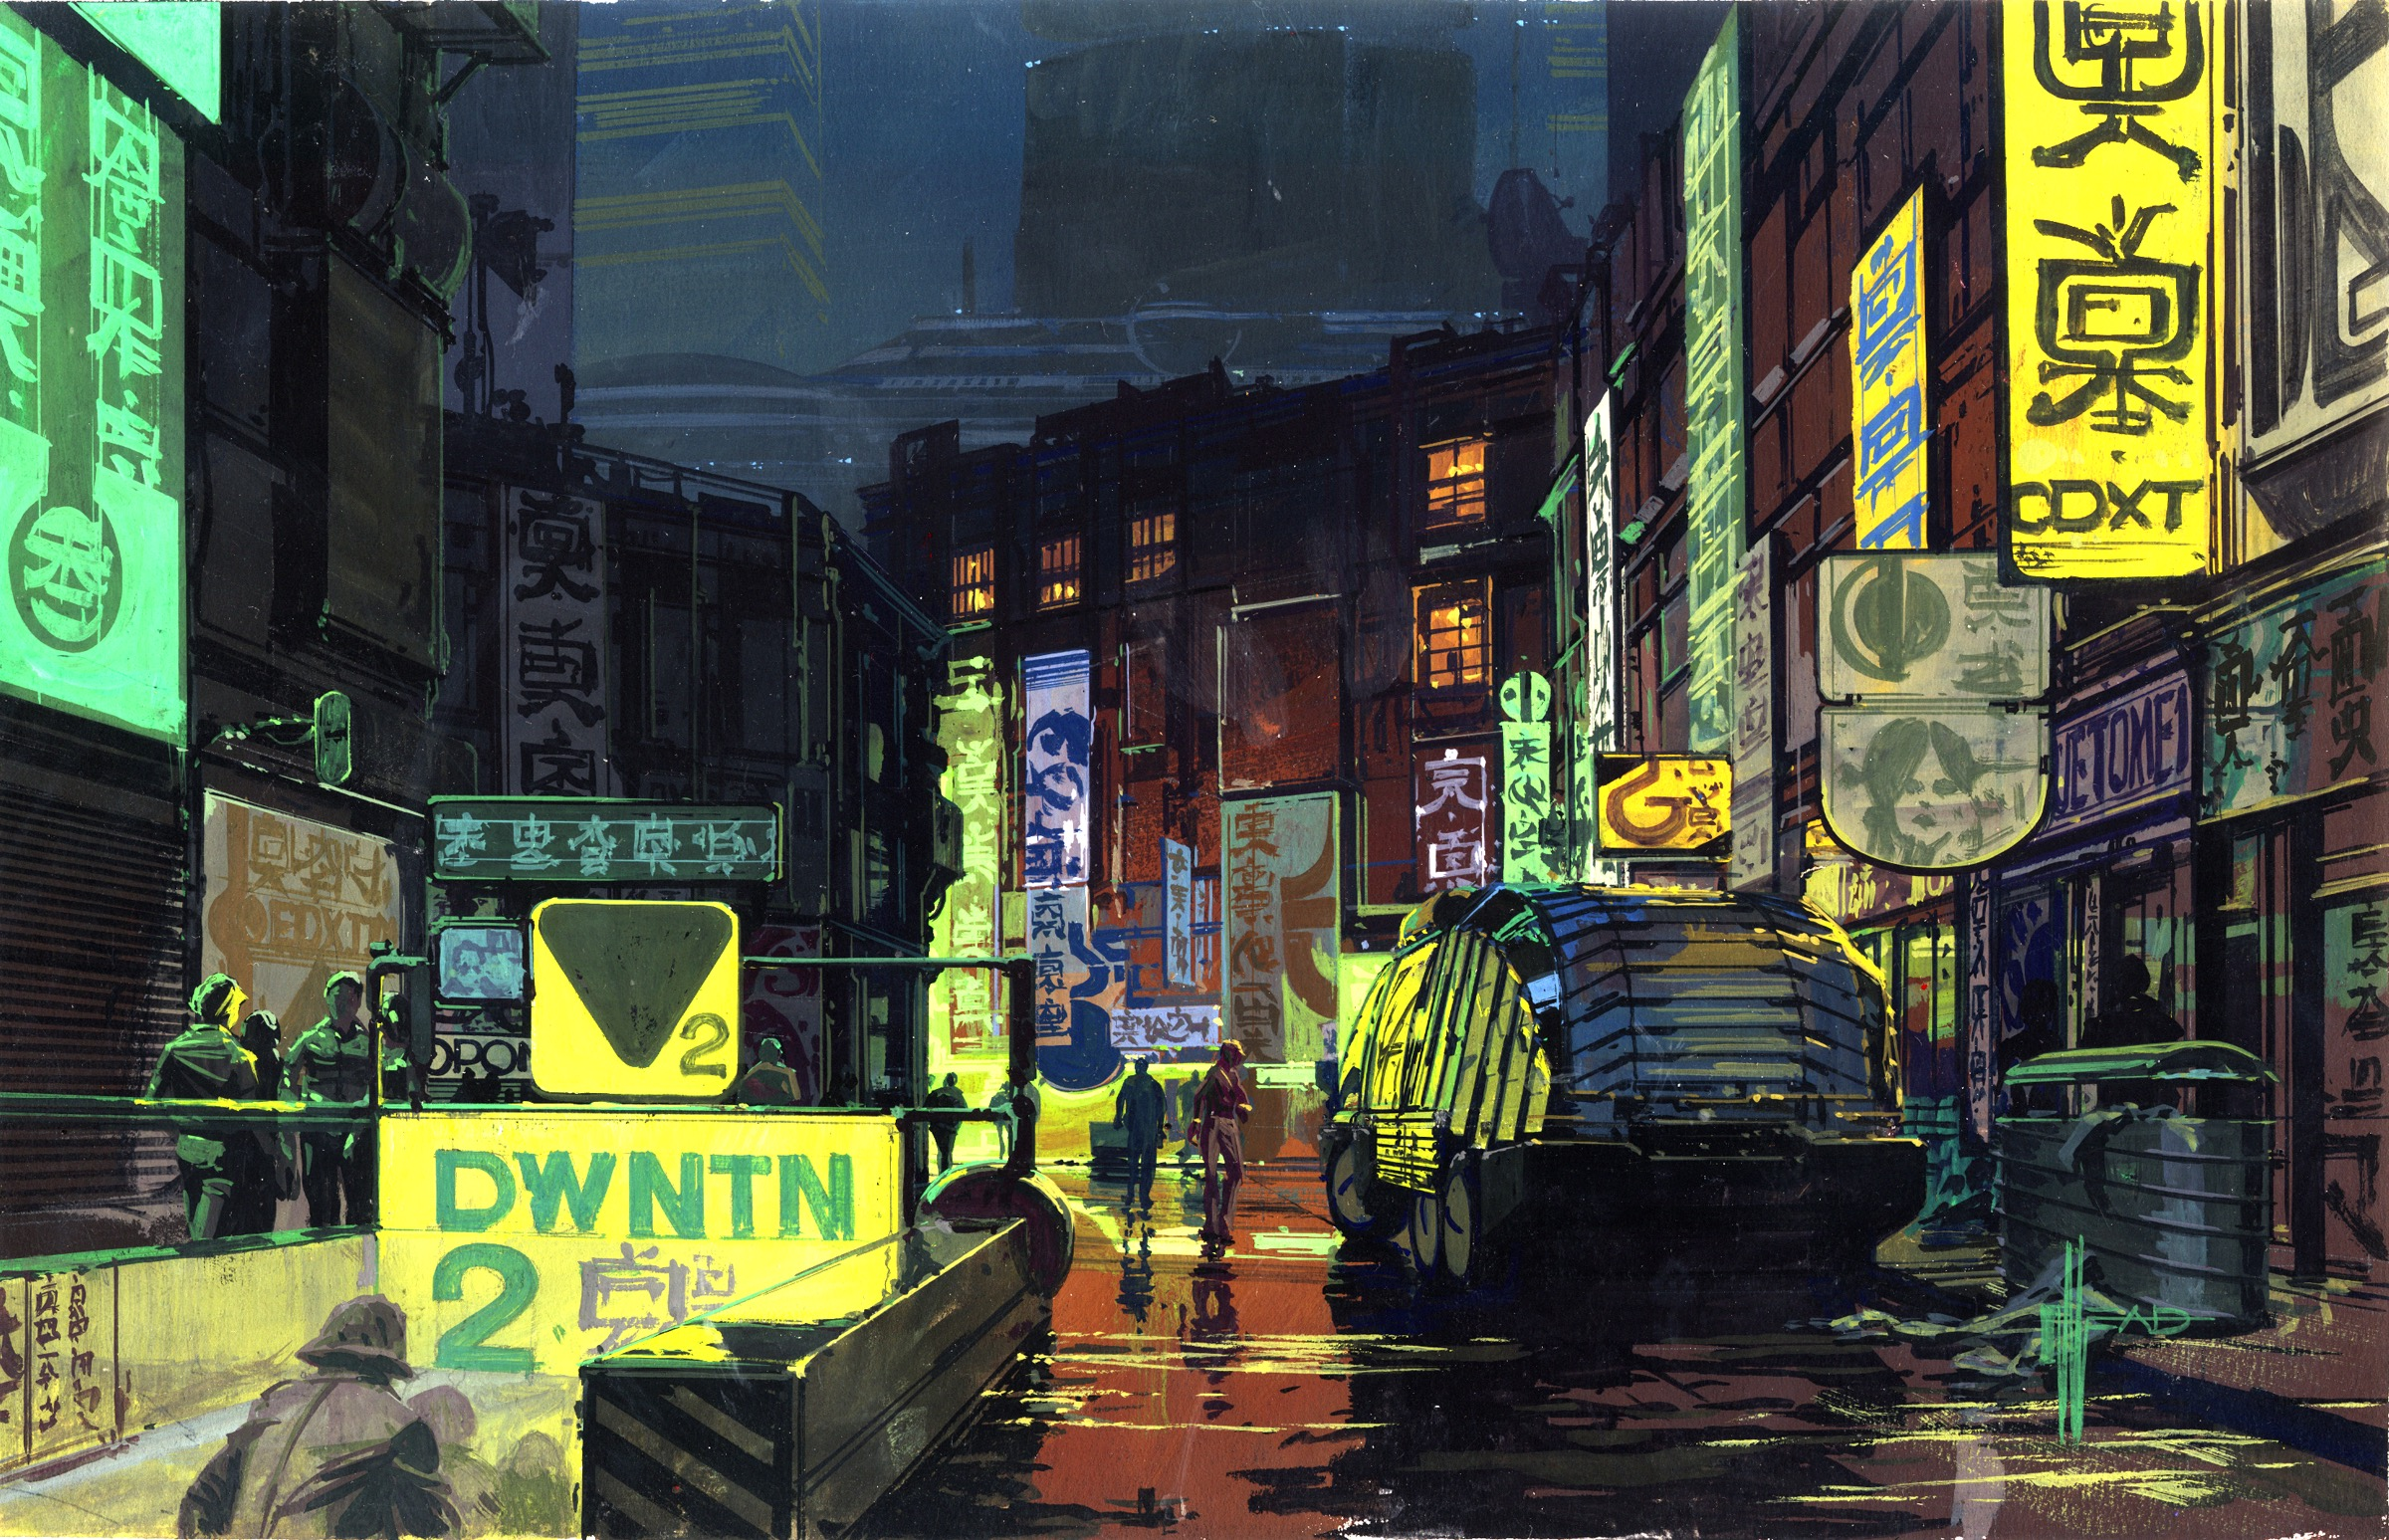 Downtown City Scape 『ブレードランナー』 © Syd Mead, Inc. © 1982 The Blade Runner Partnership. All Rights Reserved.